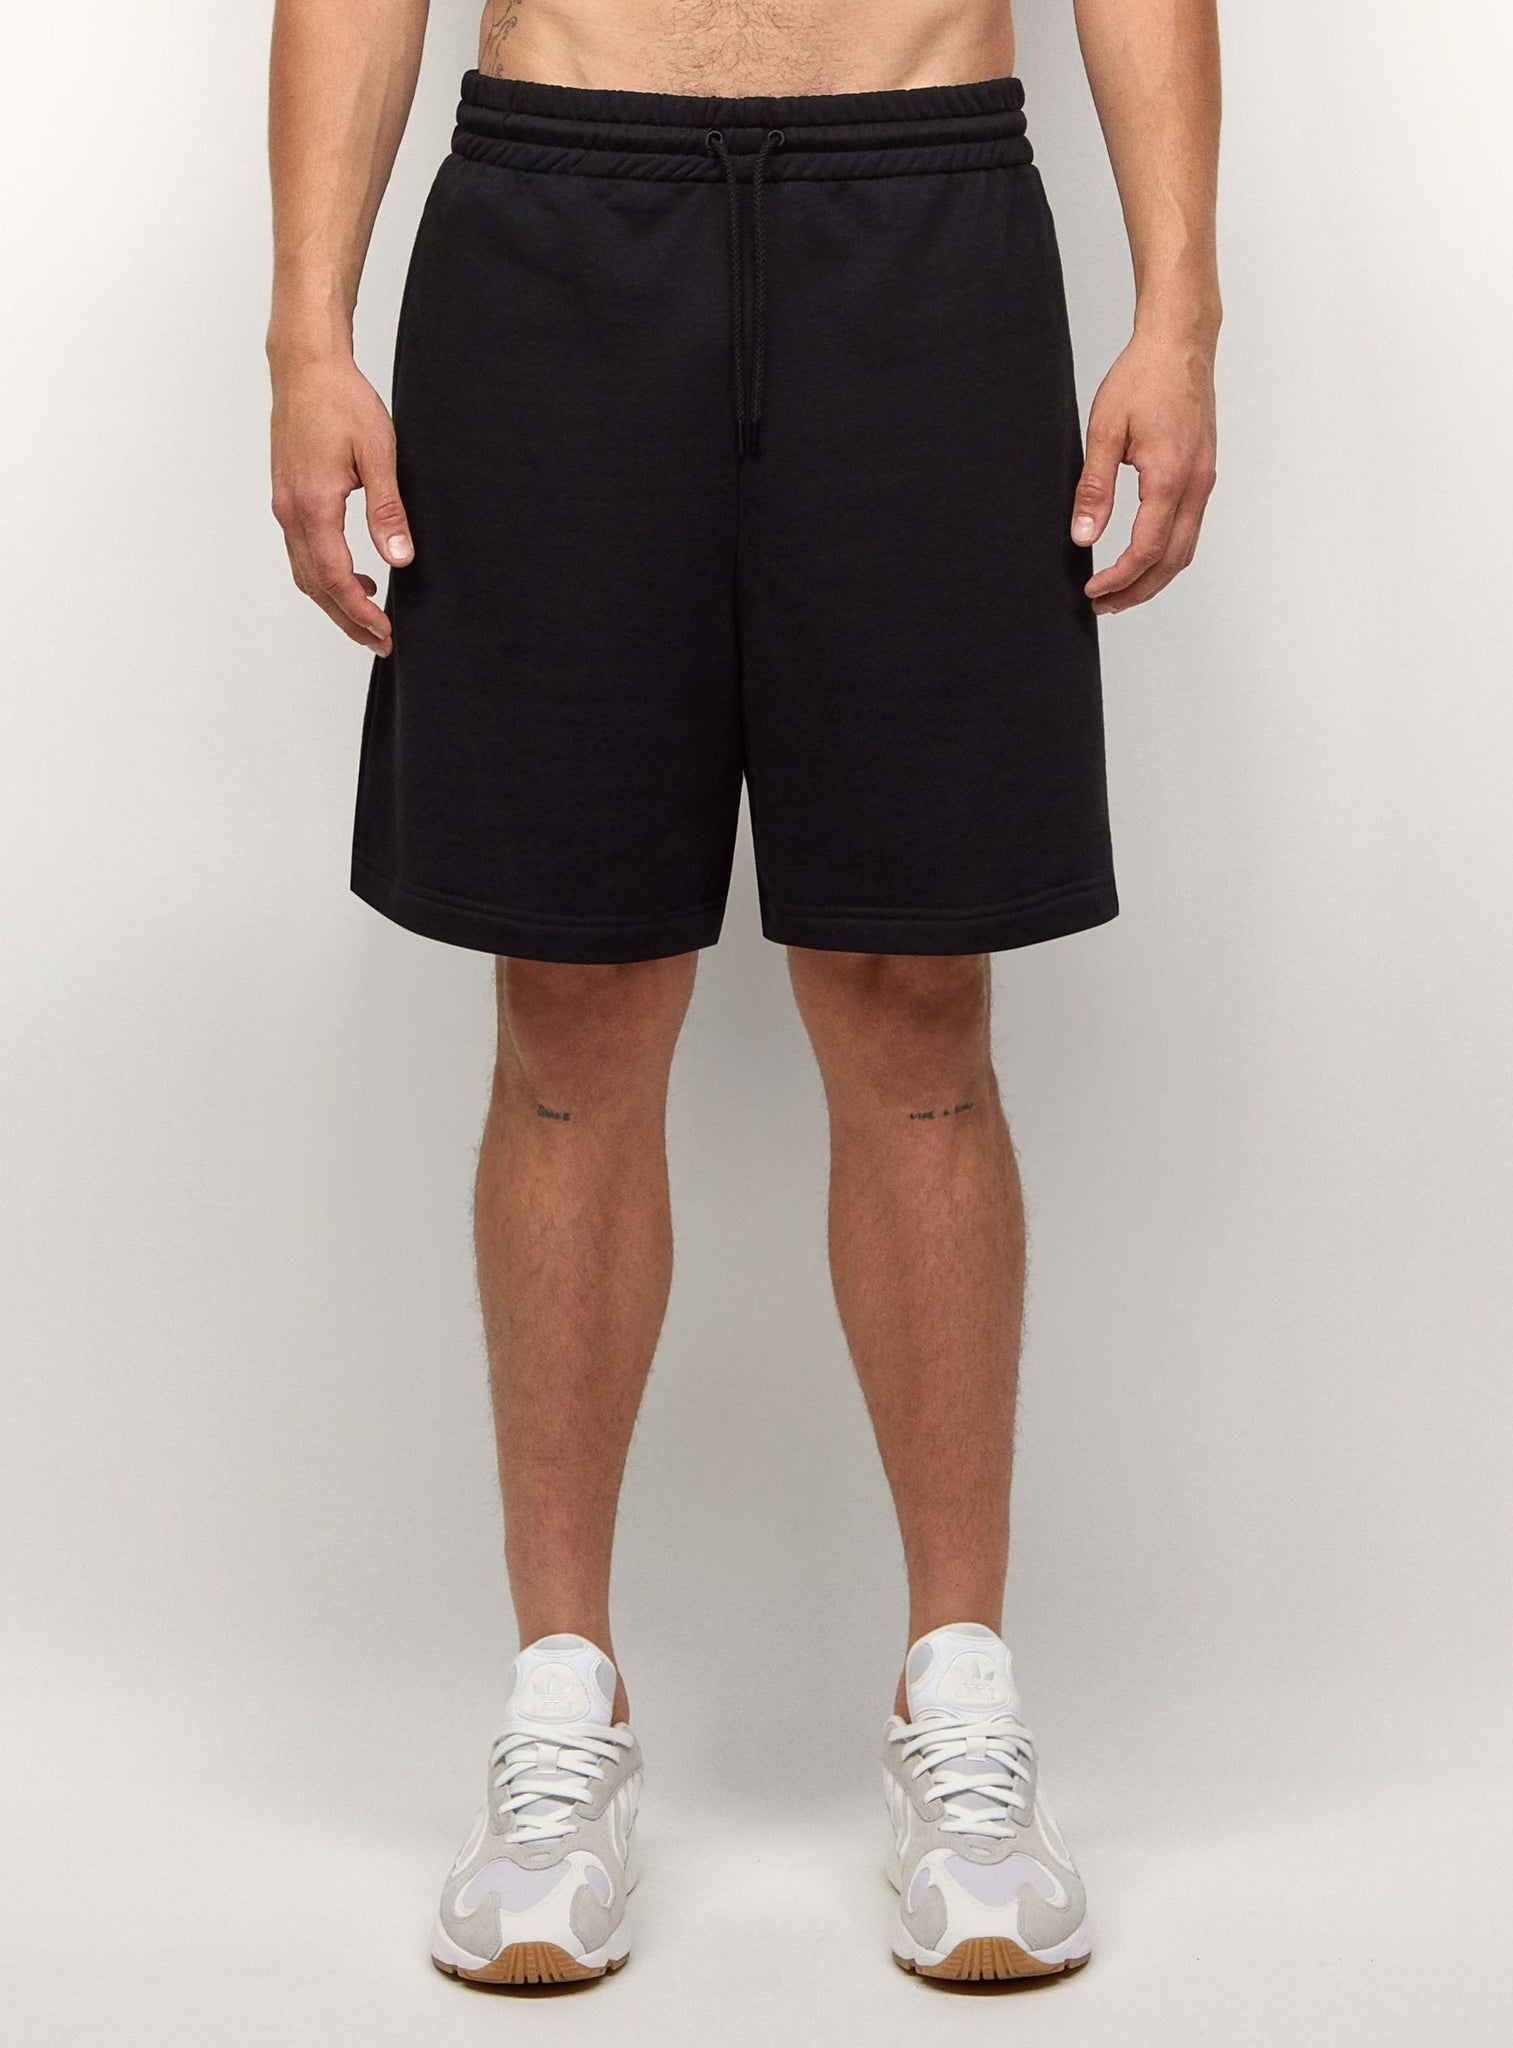 WARDROBE.NYC Track Short |M02